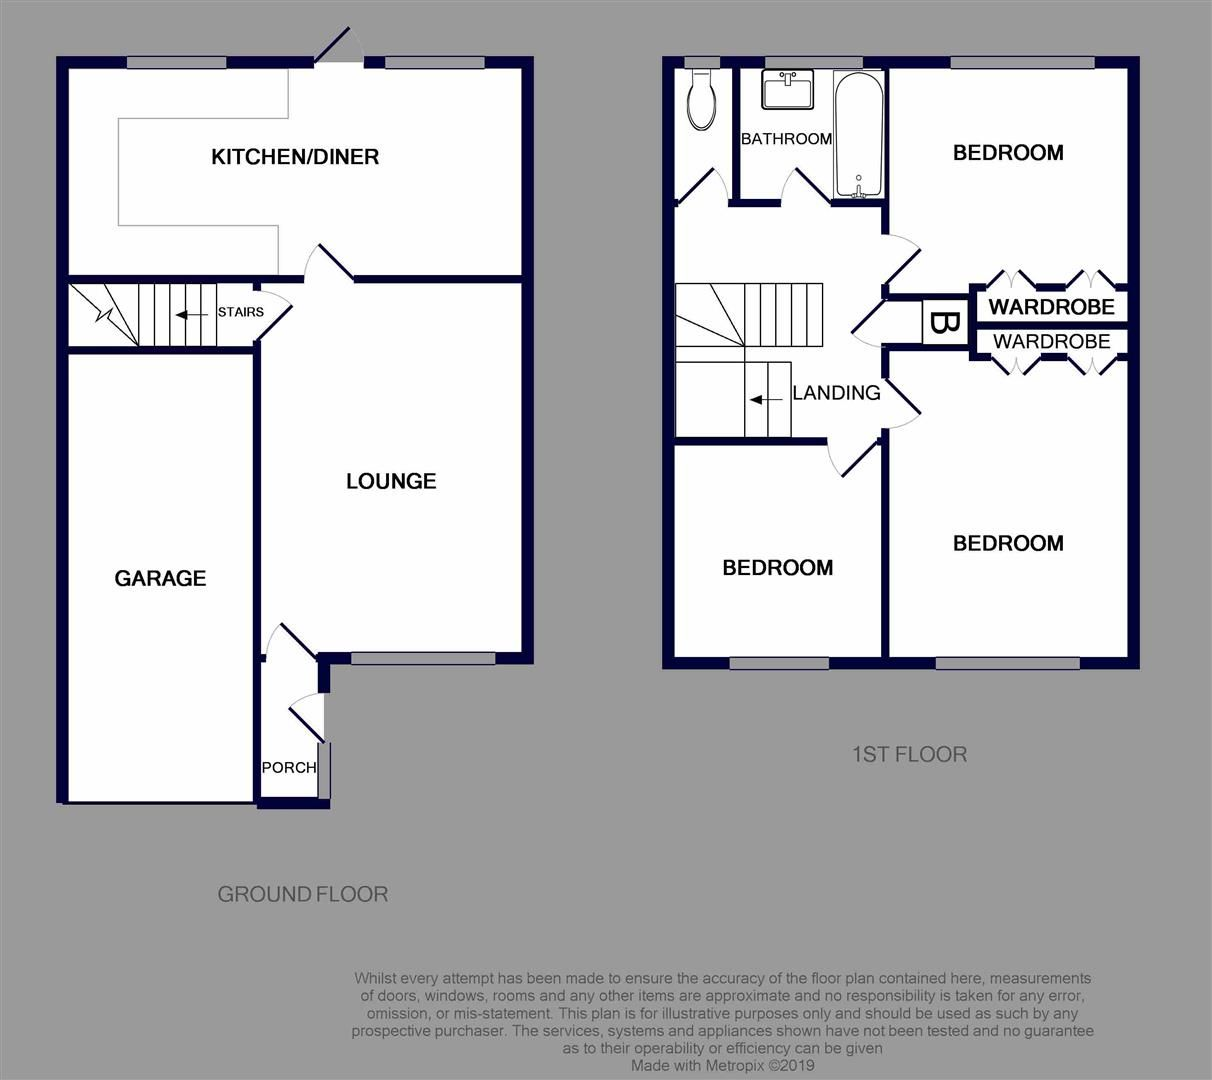 3 bed terraced for sale - Property Floorplan